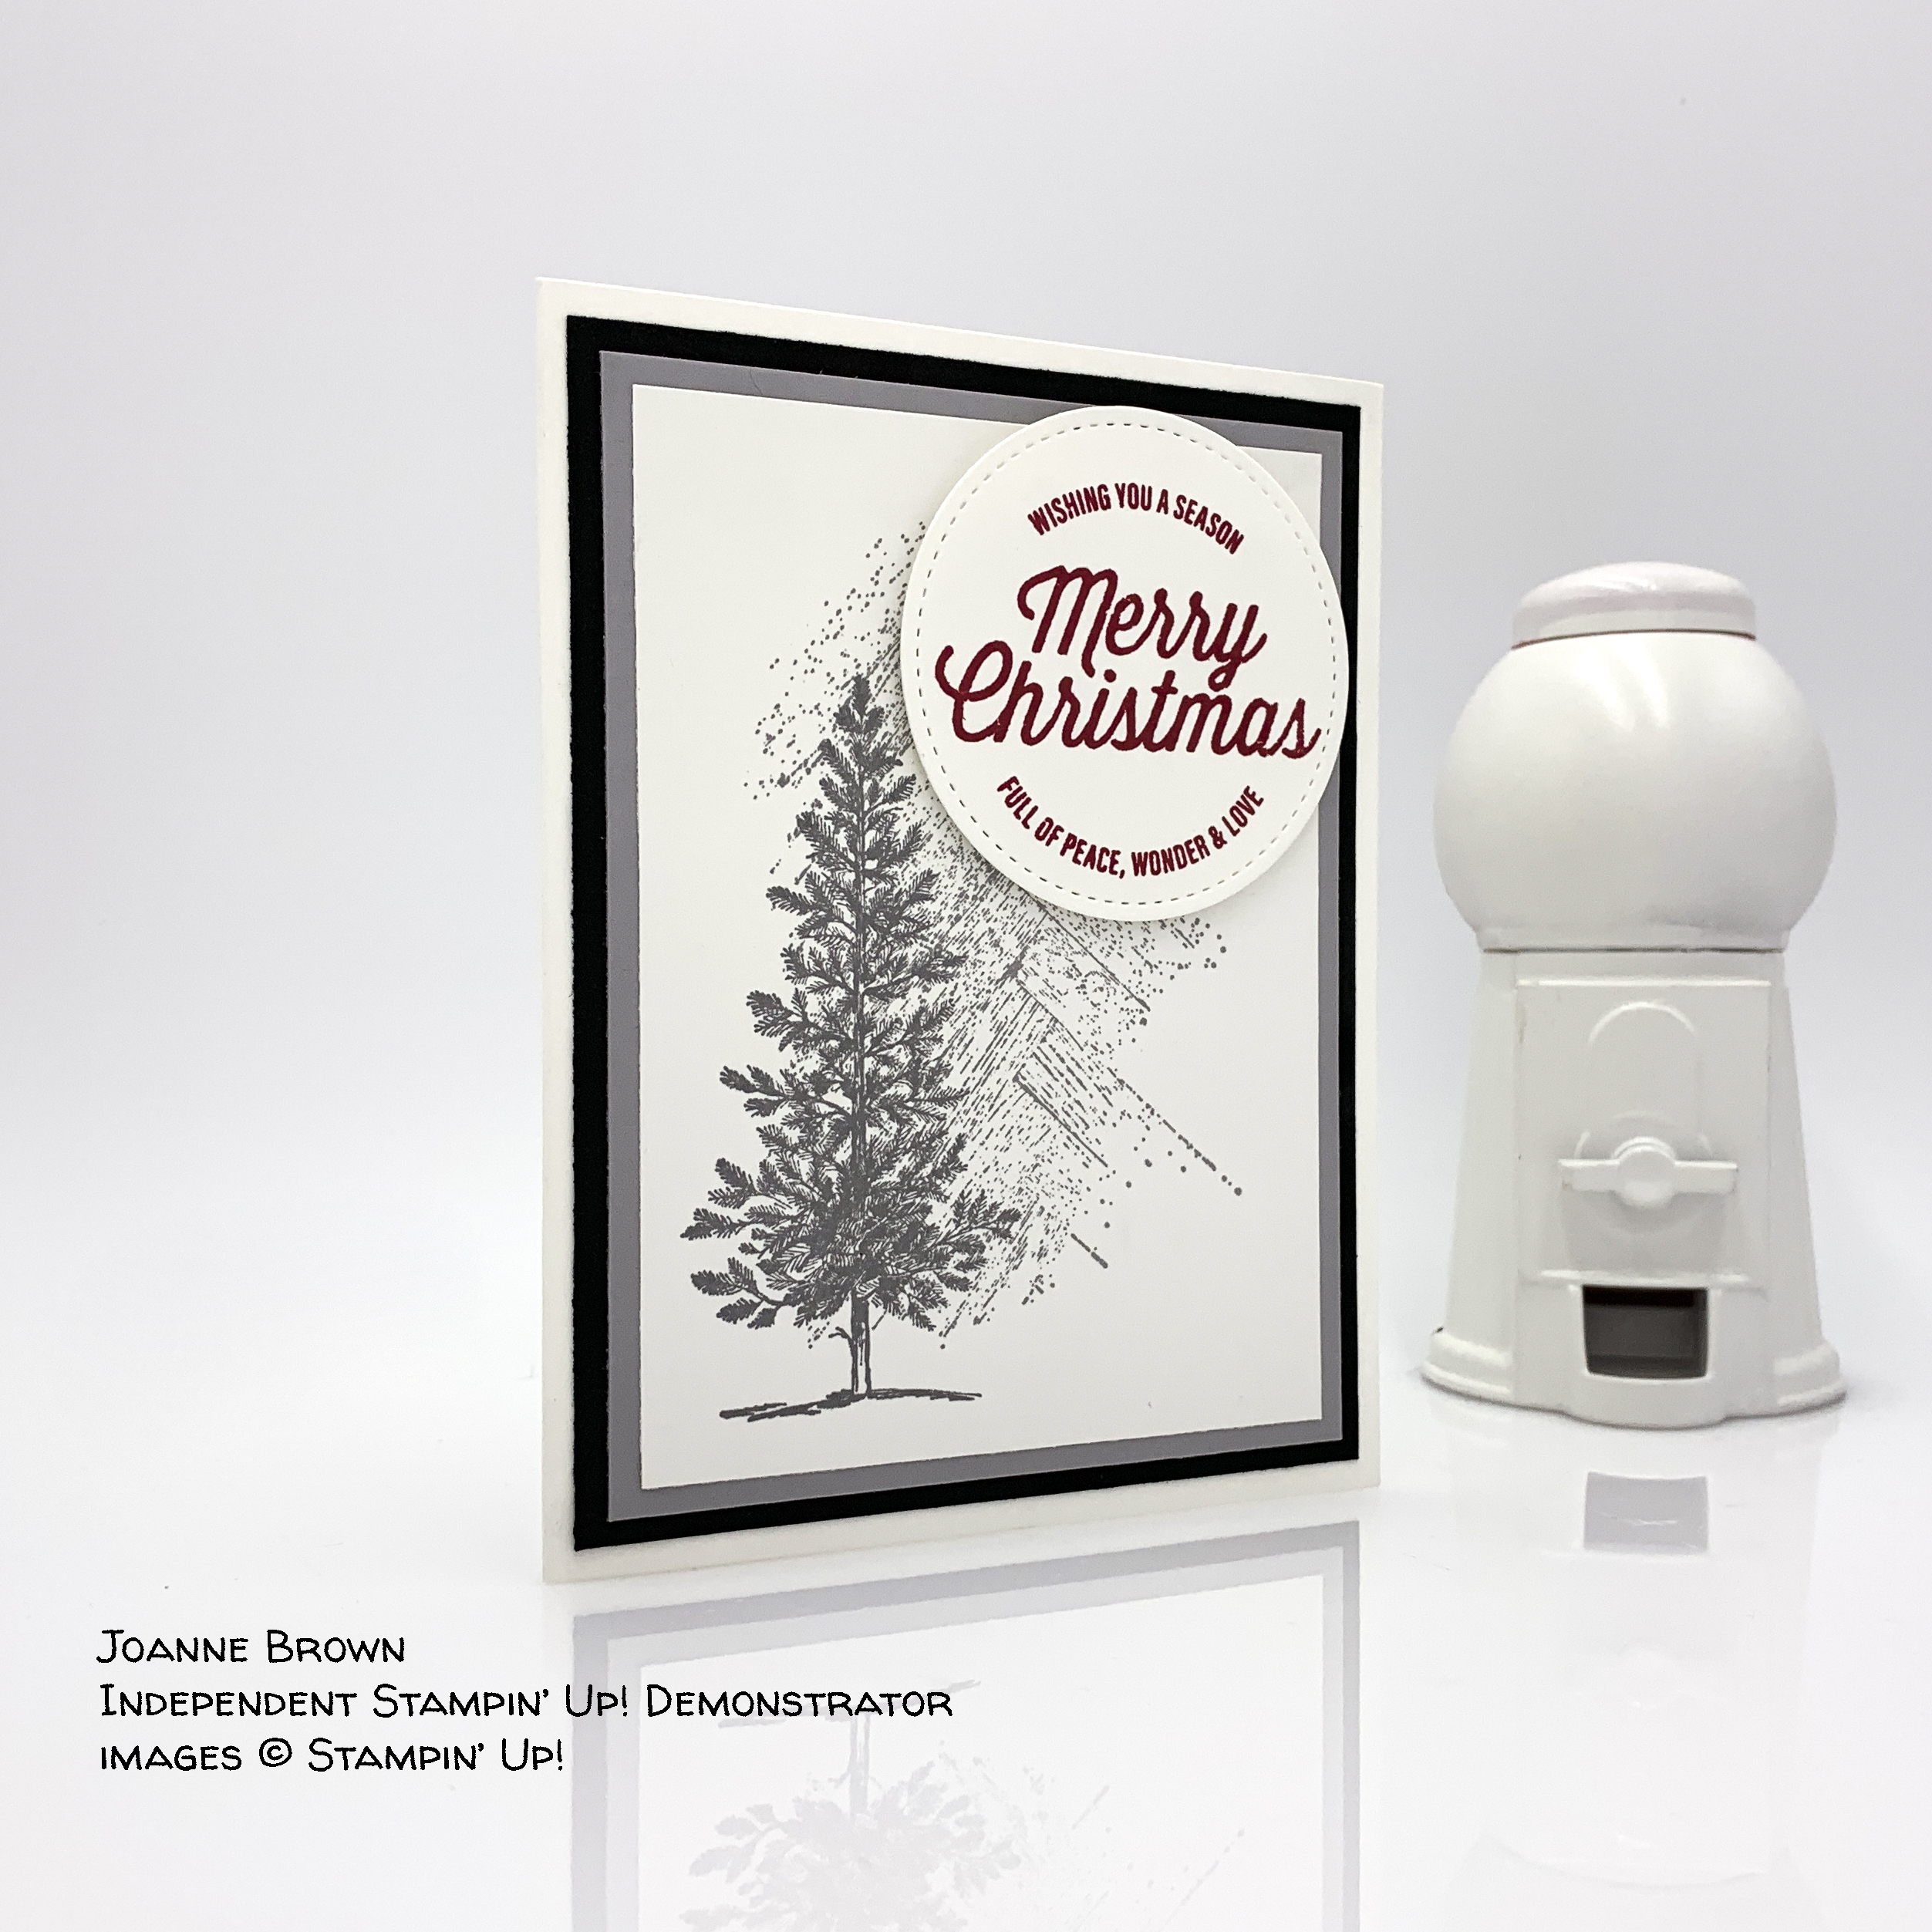 Merry Christmas card made by Joanne Brown, Independent Stampin' Up! Demonstrator #stampcandy